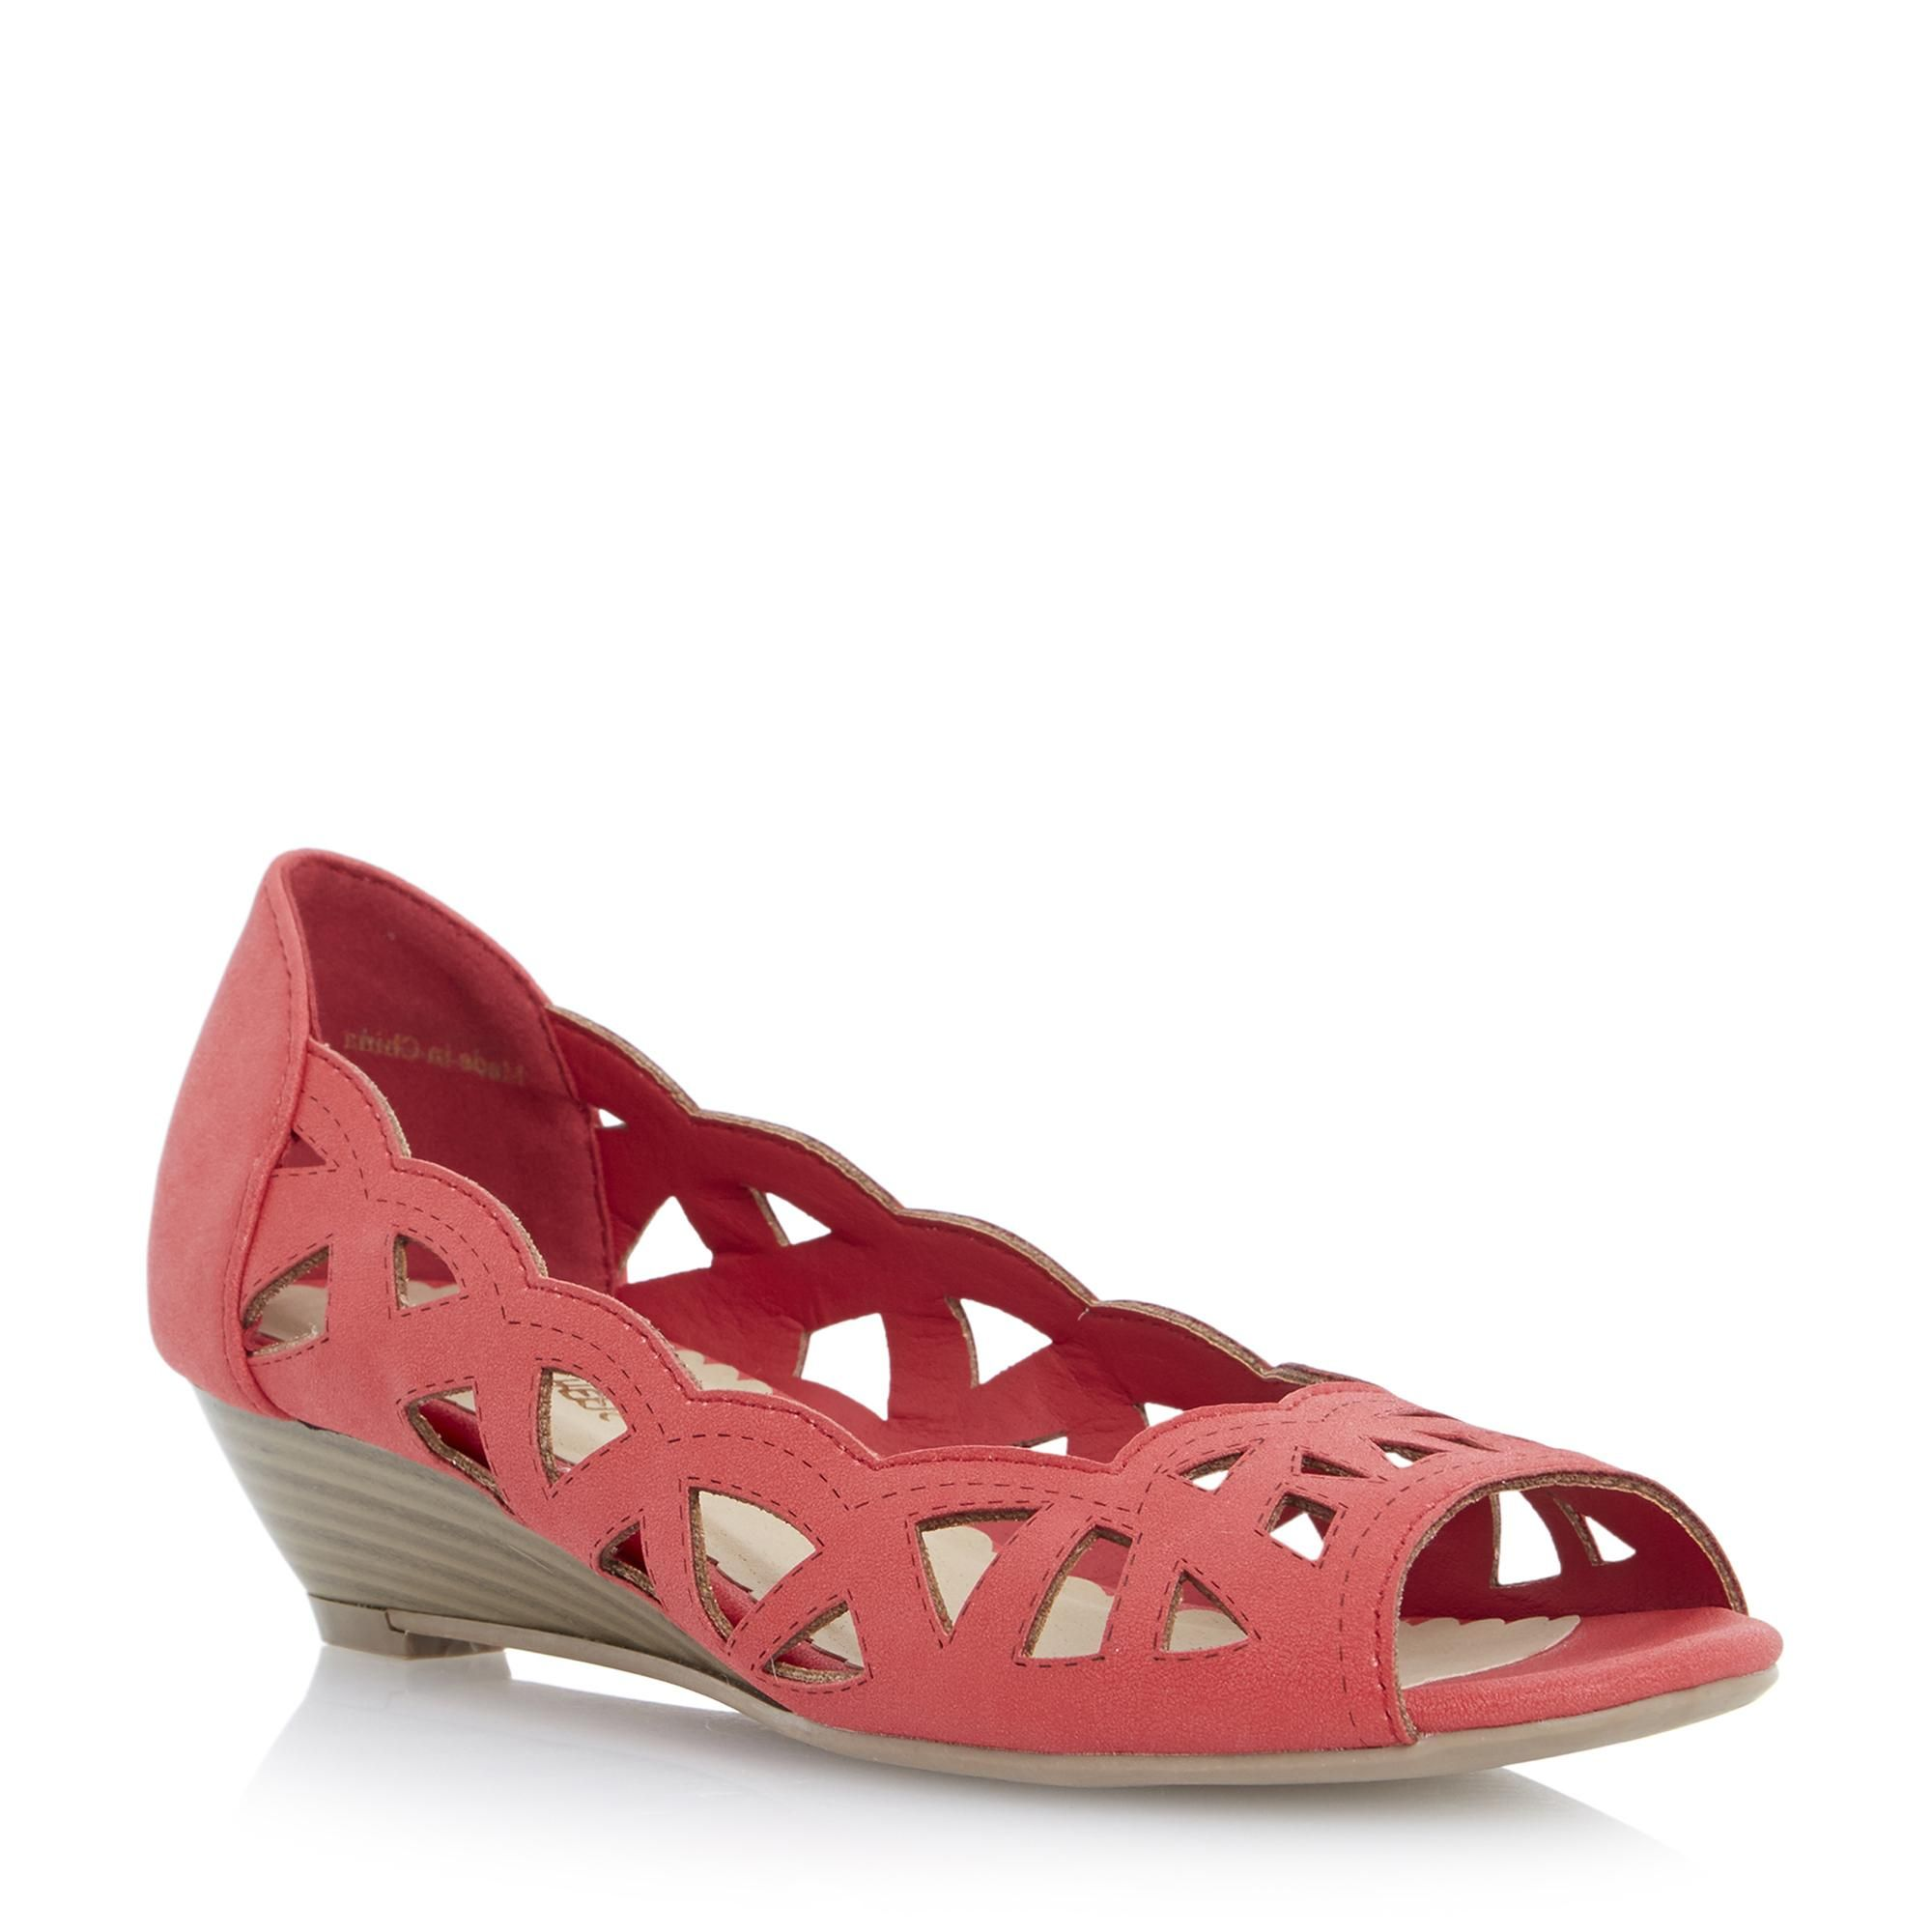 18f2a9824f2 Head Over Heels Ladies KOSMO - Laser Cut Out Wedge Sandal - coral ...